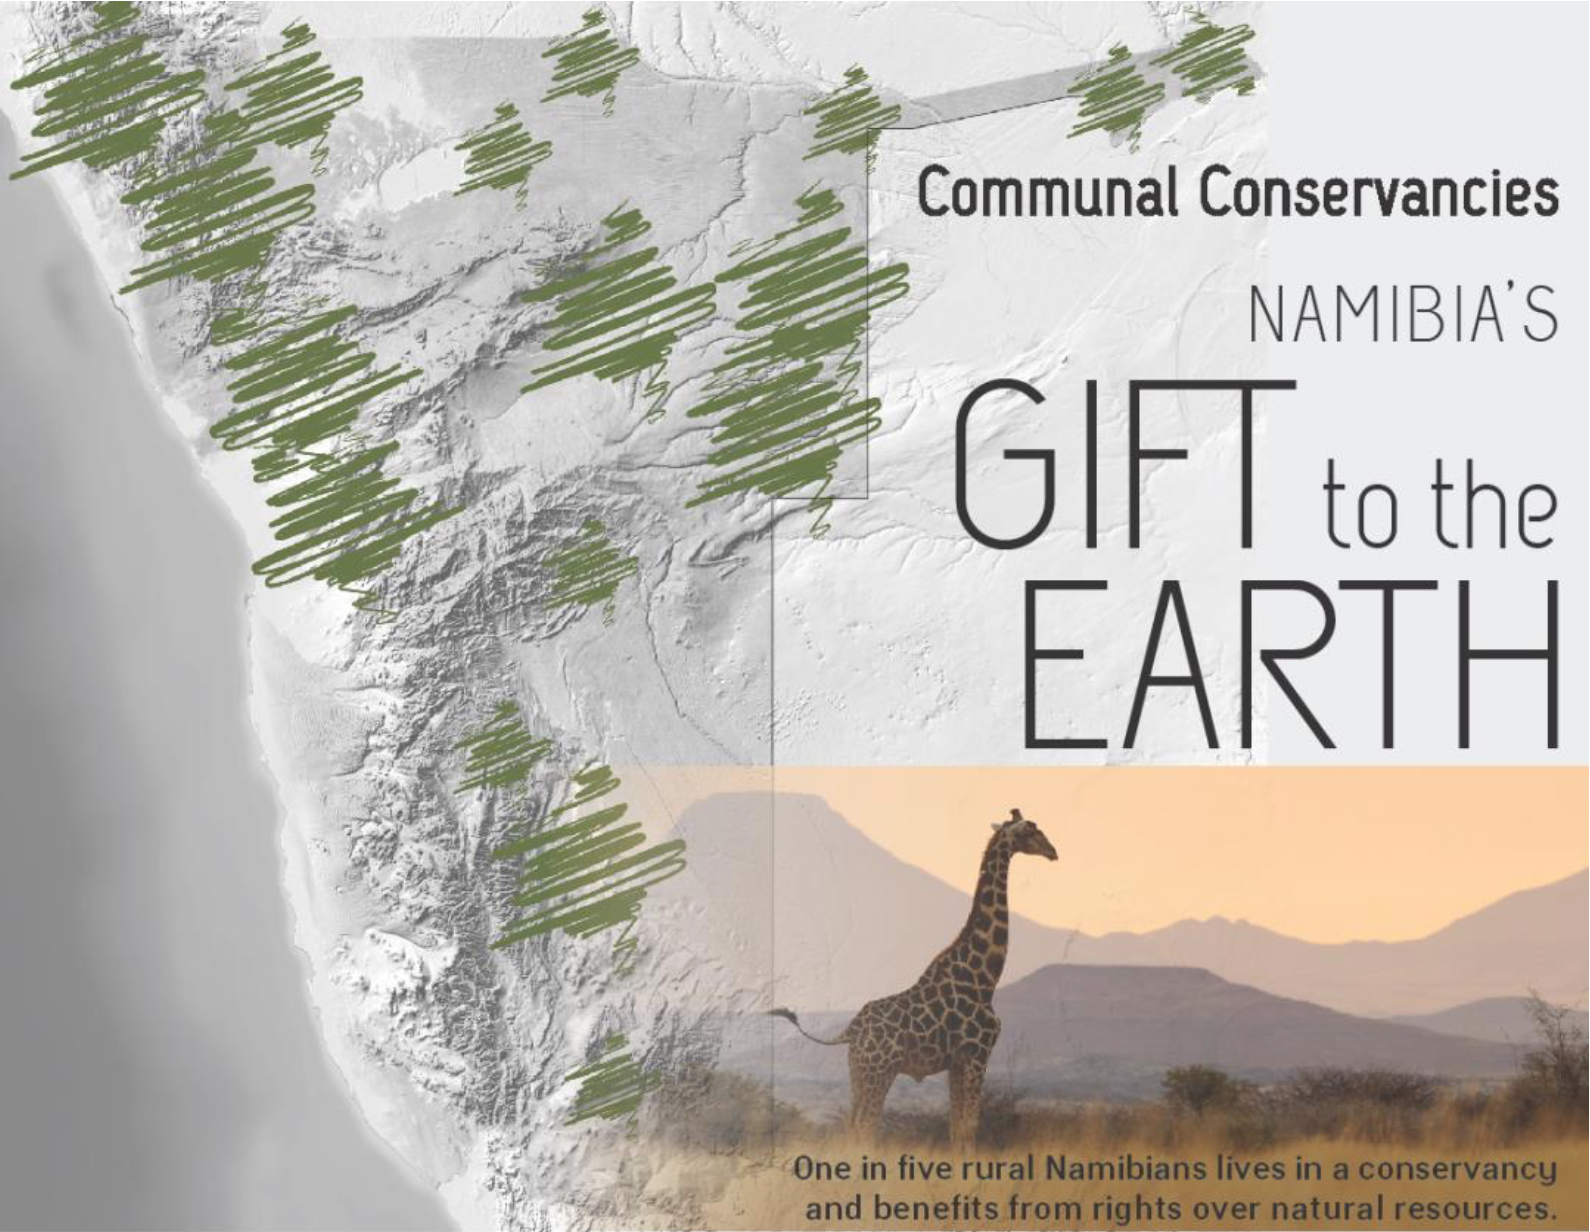 Communal Conservancies Namibia's Gift To The Earth.png